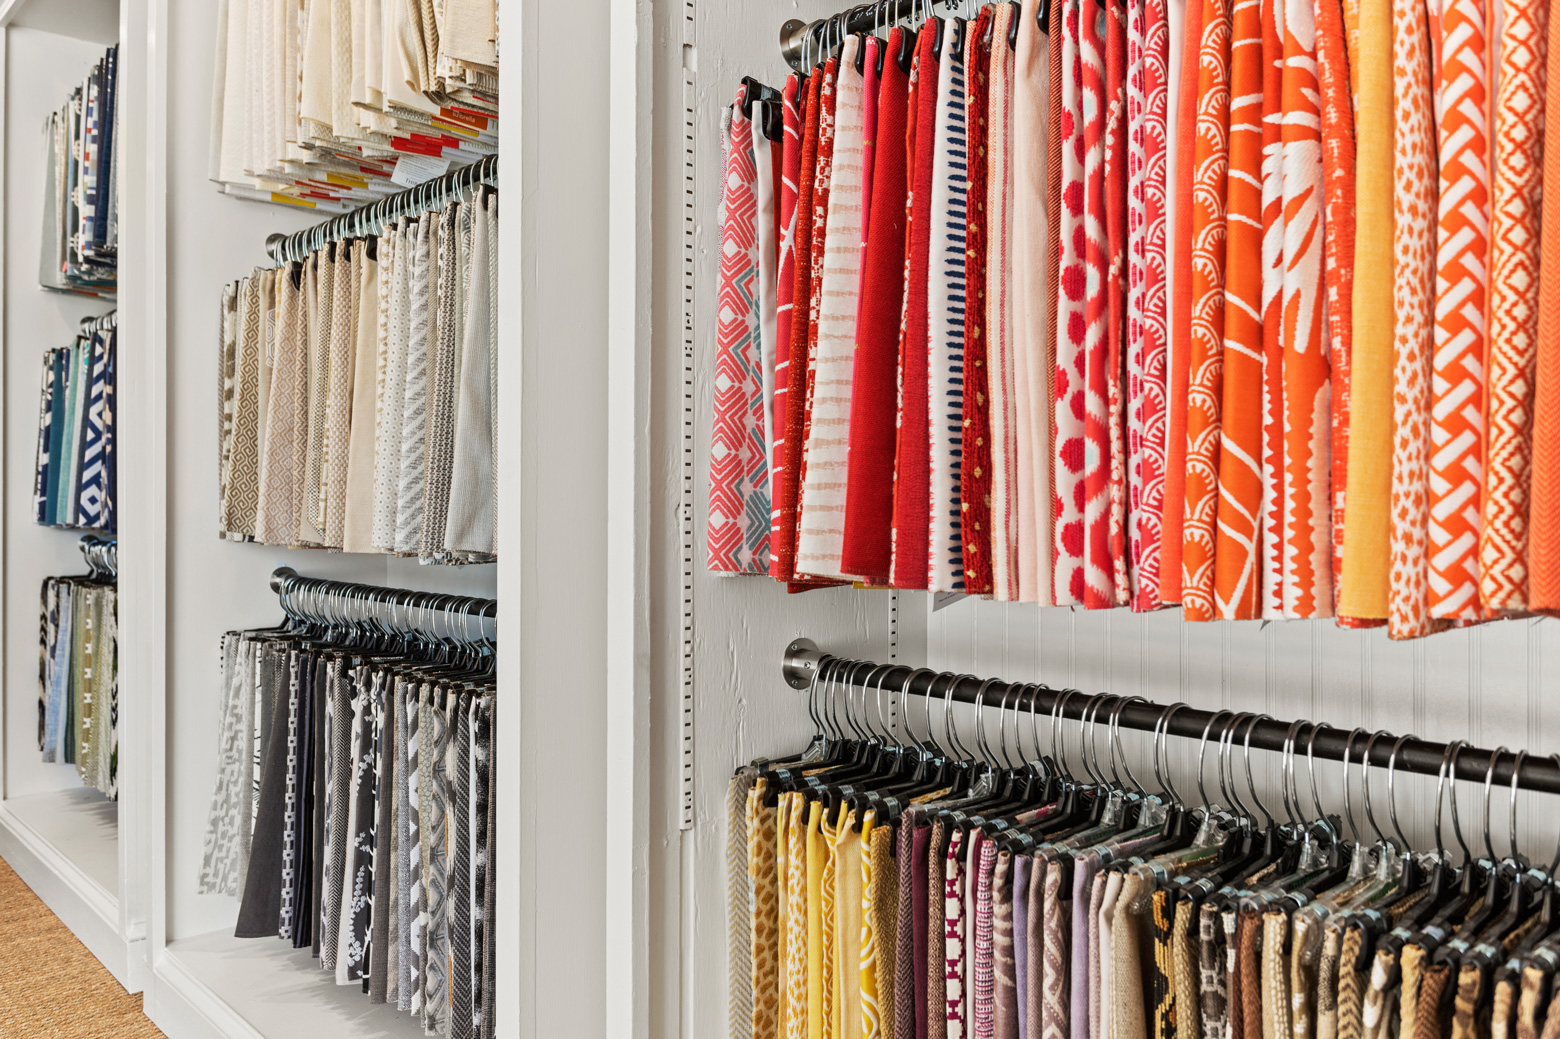 Hanging fabric swatches